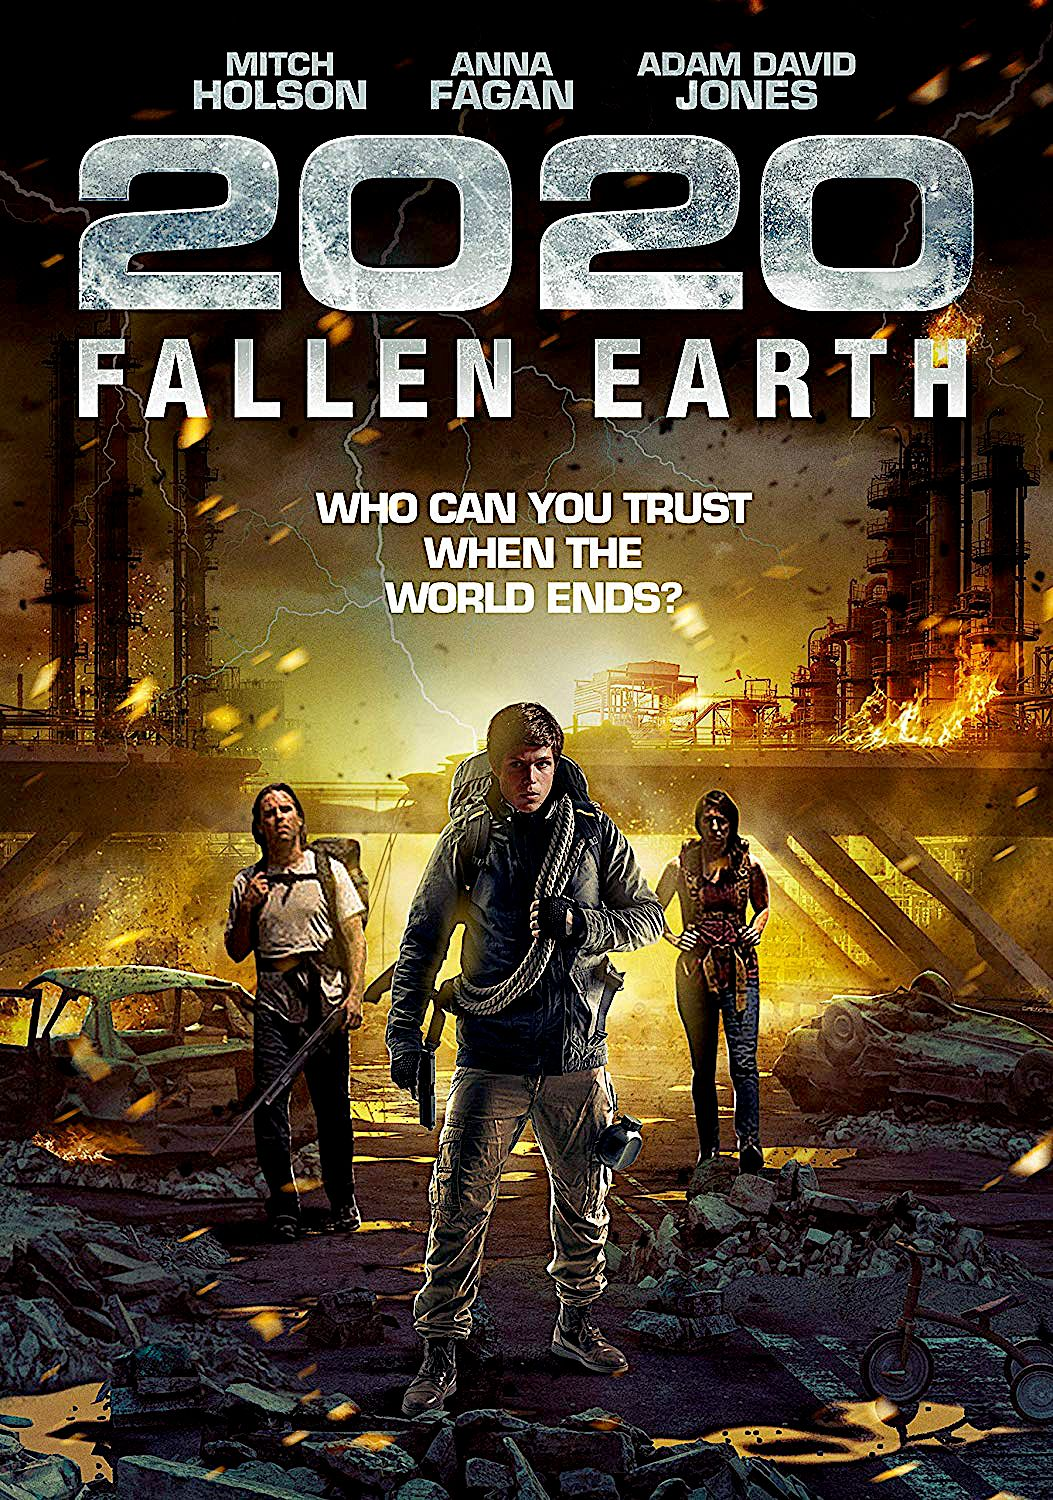 2020 Fallen Earth Dvd Wild Eye Releasing Wild Eyes End Of The World Horror Movies